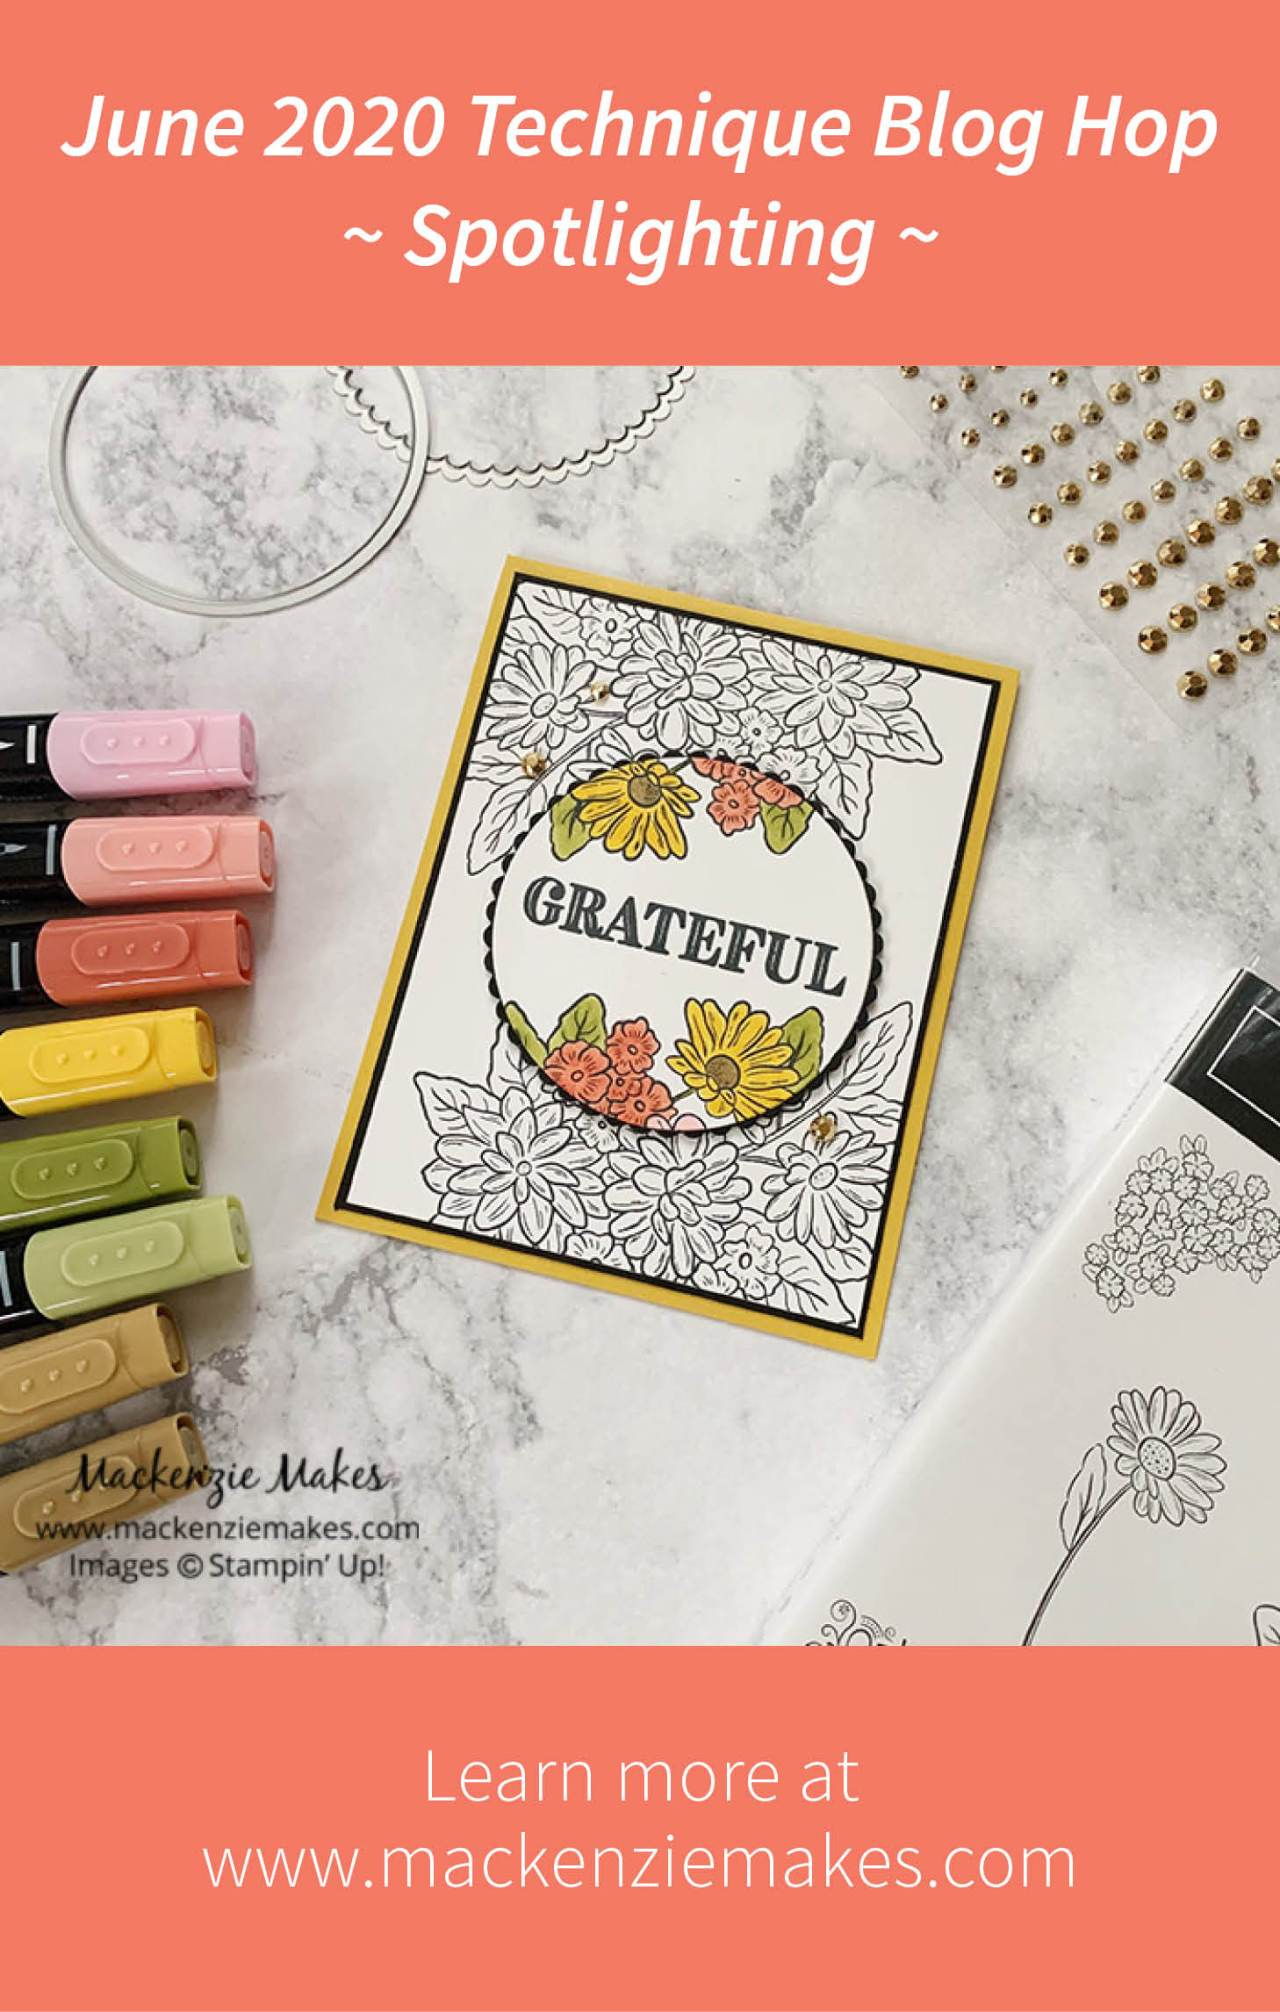 June 2020 Technique Blog Hop - Spotlighting – Click through to learn how to make a card using the spotlighting technique. | #mackenziemakes #stampinup | www.mackenziemakes.com